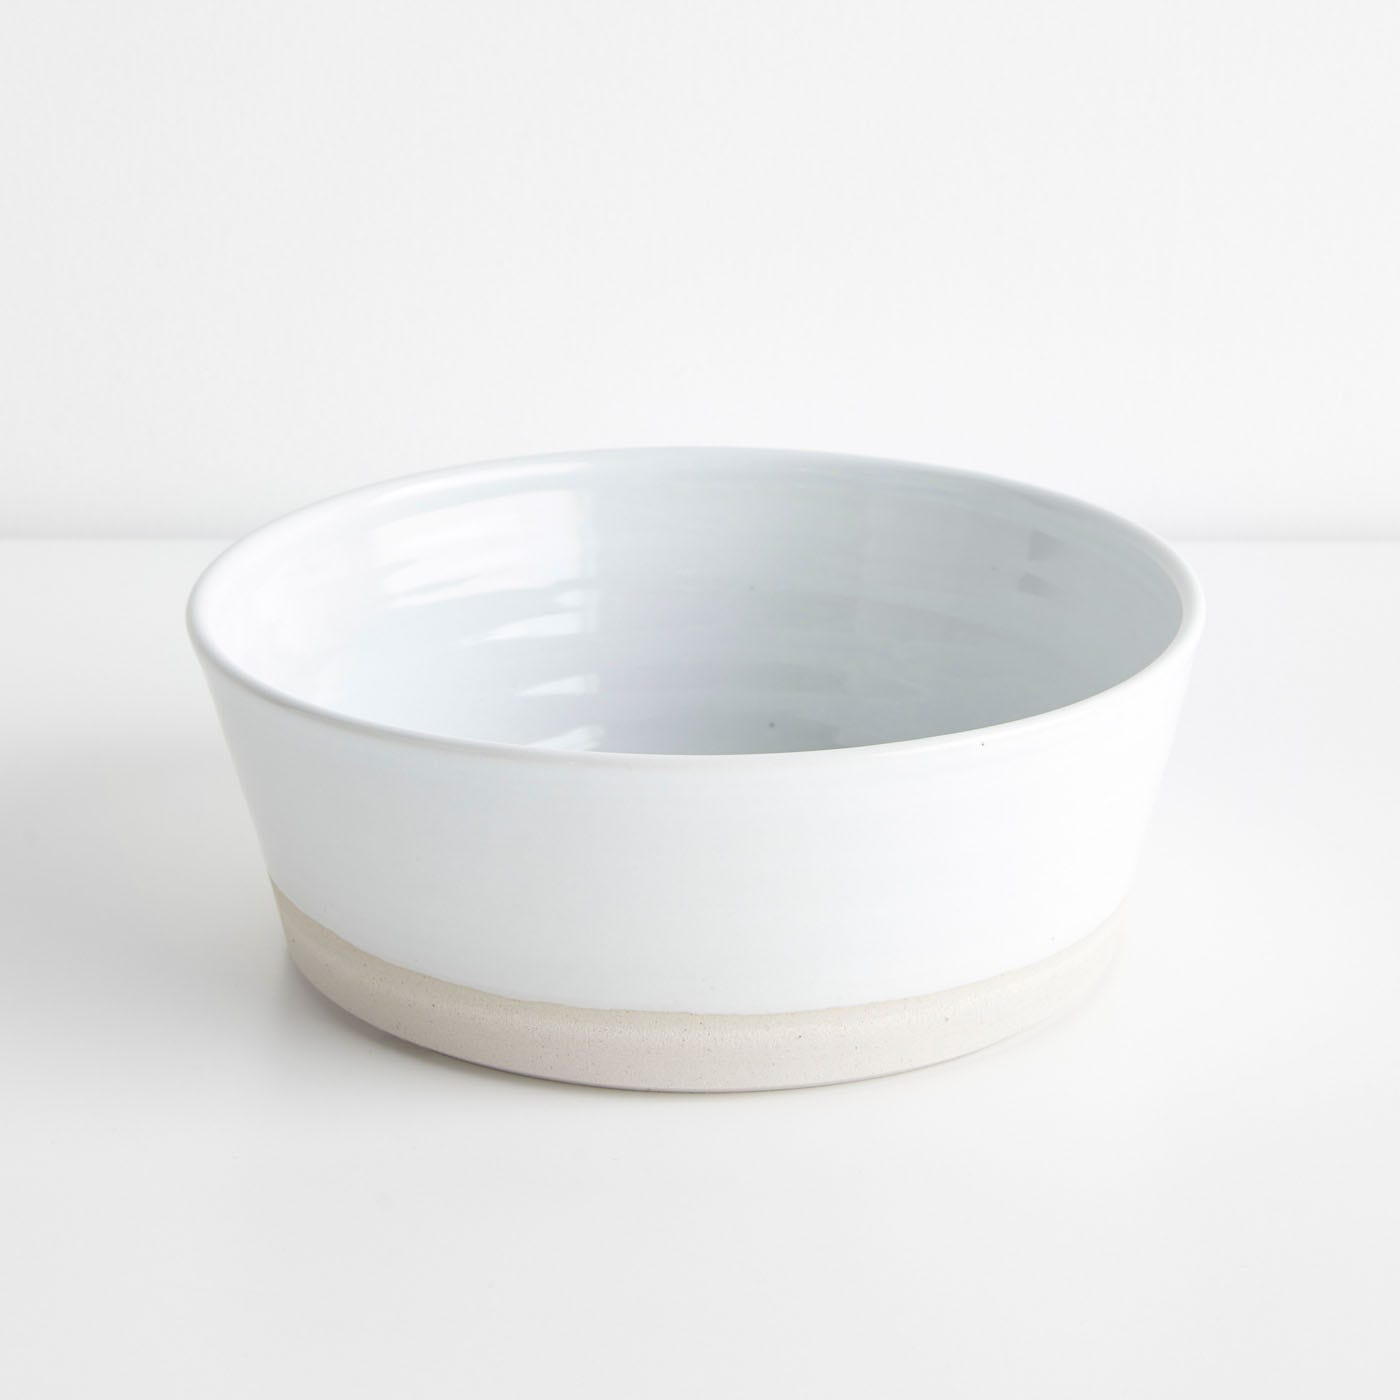 Thrown Gloss White Flat Bowl